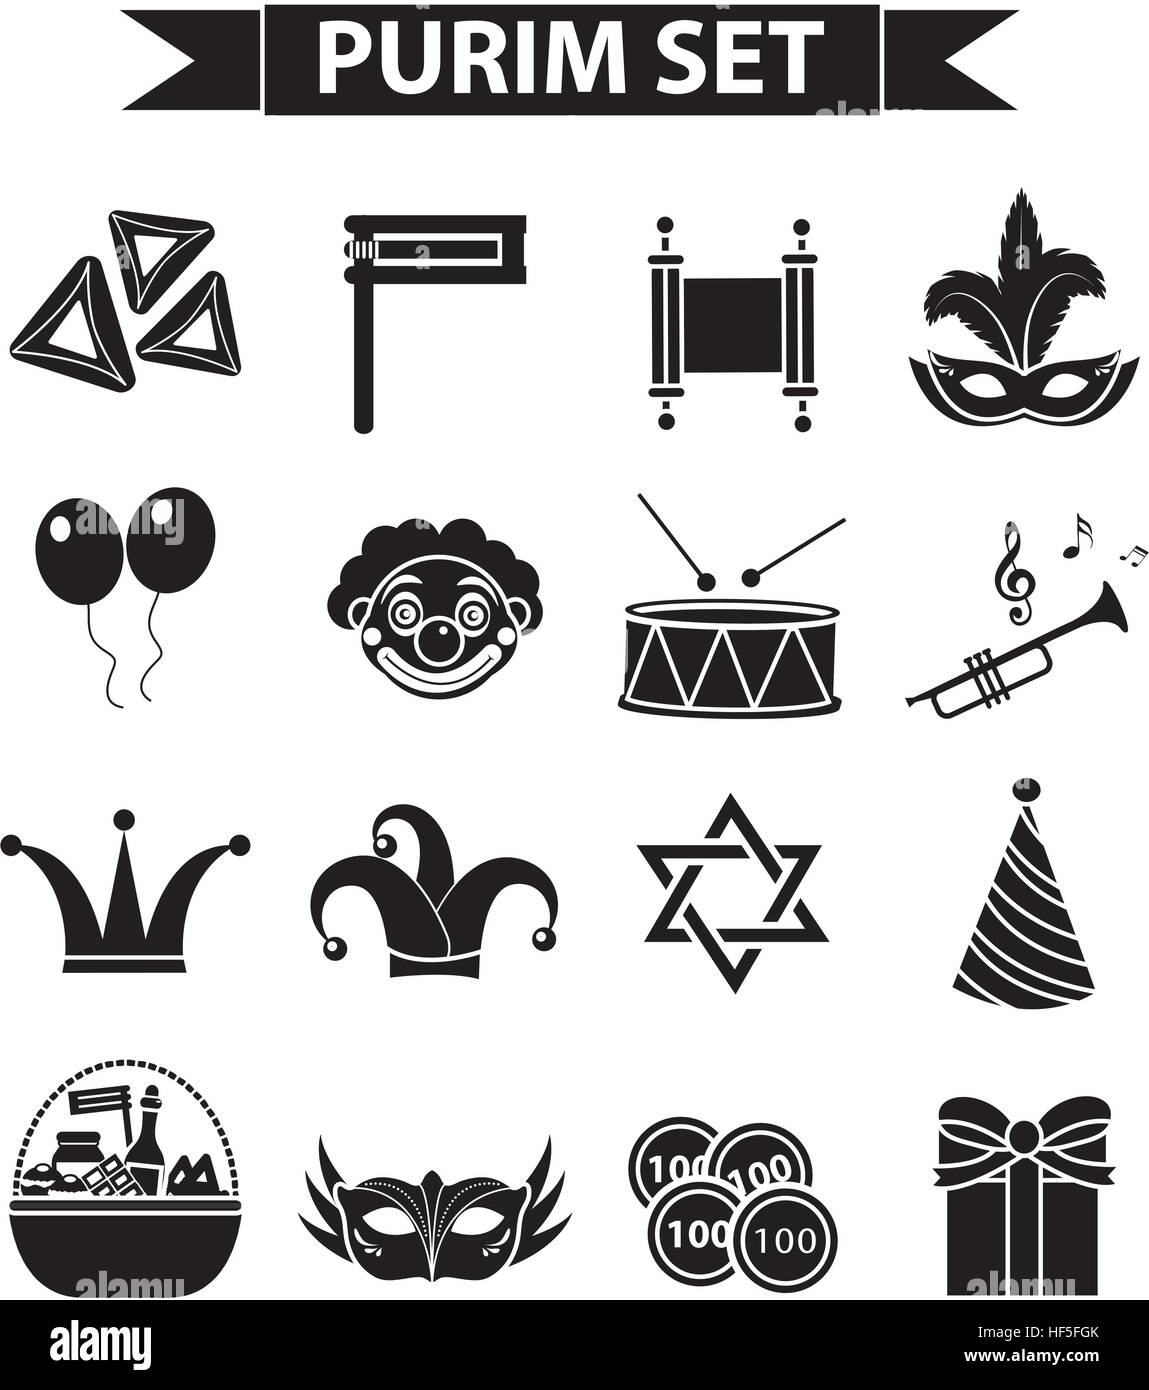 Happy Purim Carnival Icons Set Black Silhouette Style Jewish Stock